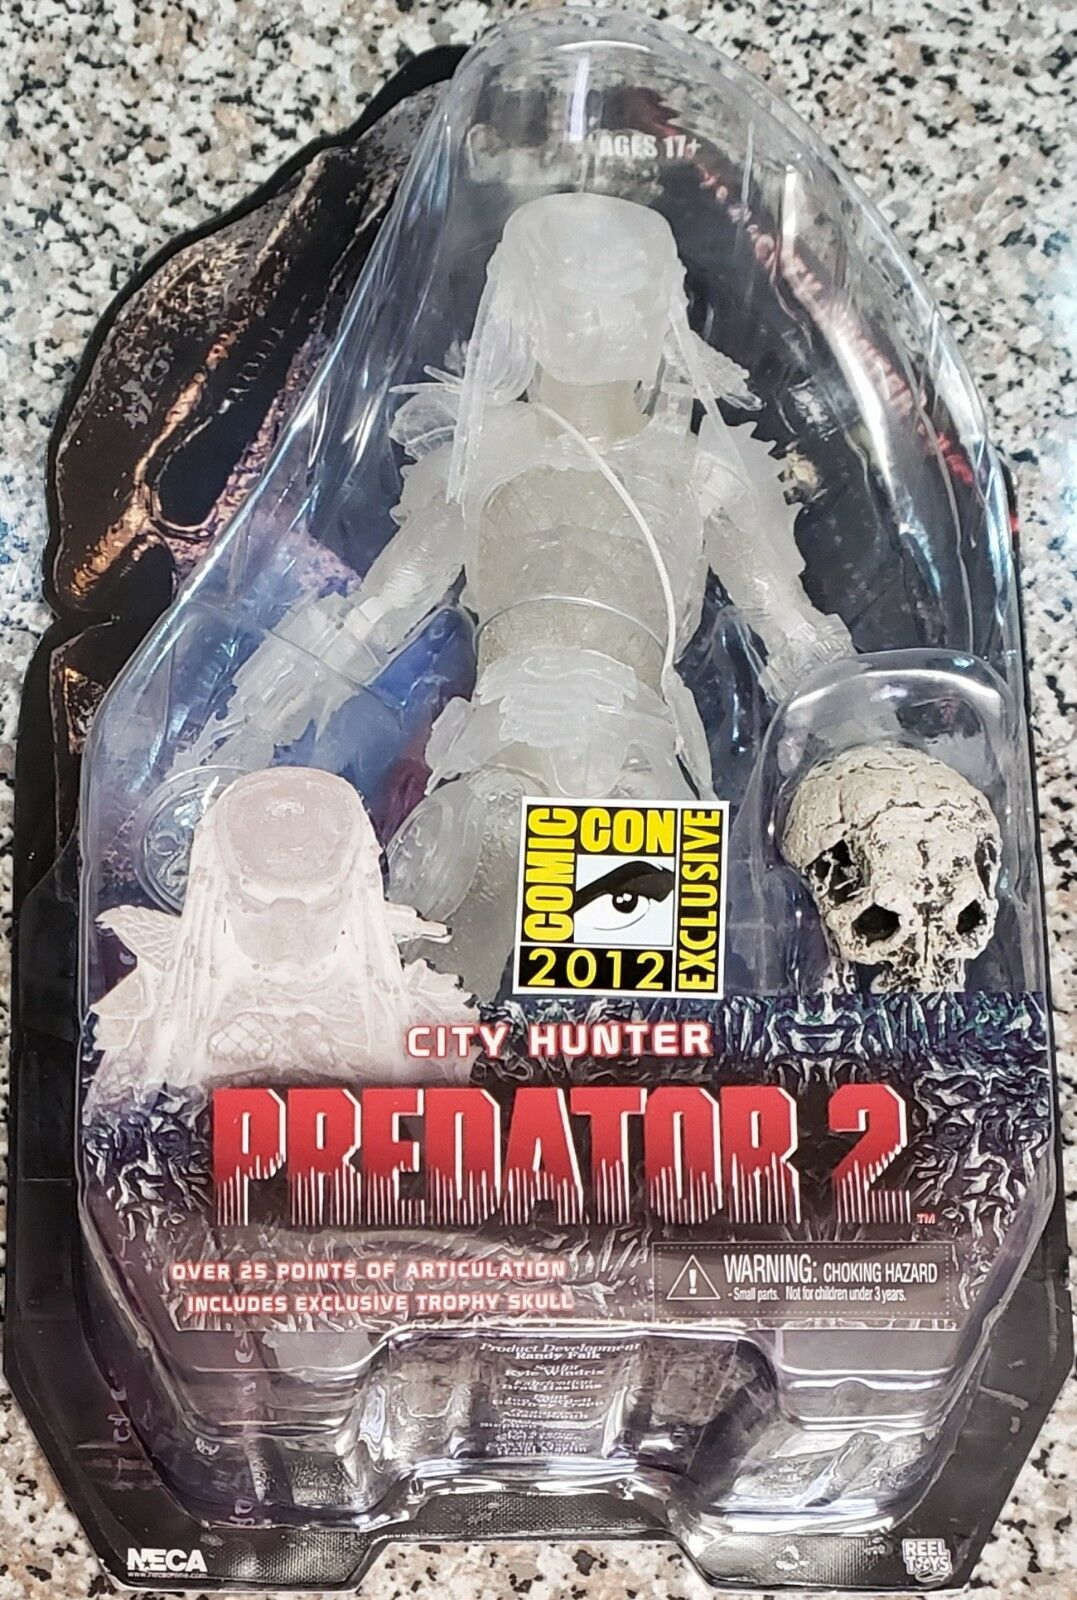 NECA ProtATOR 2, CITY HUNTER CLOAKED, SDCC 2012 EXCLUSIVE (NEW & RARE)